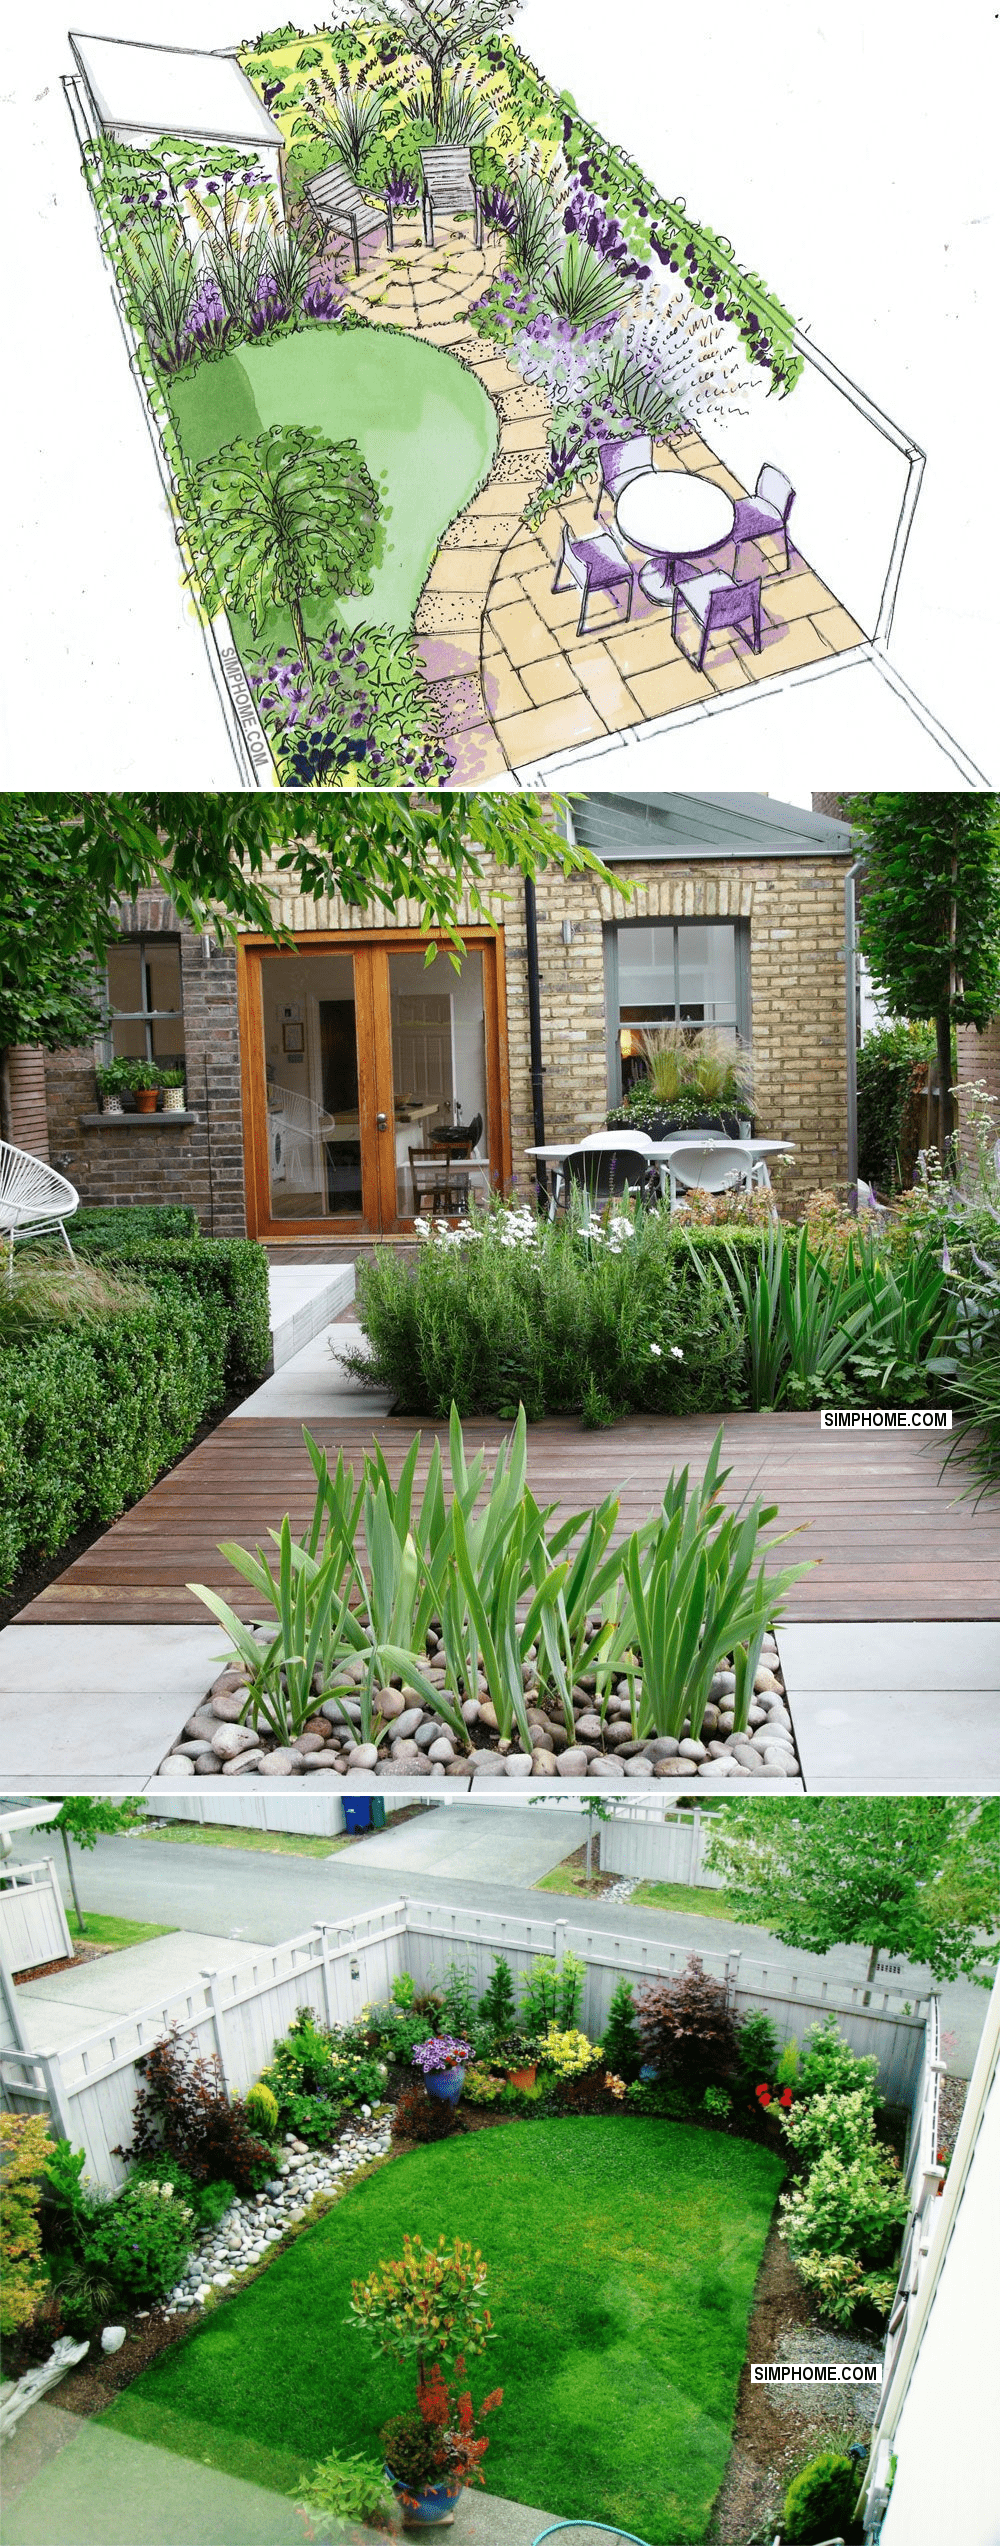 Simphome.com Small garden plans for all garden owners for 2020 2021 2022